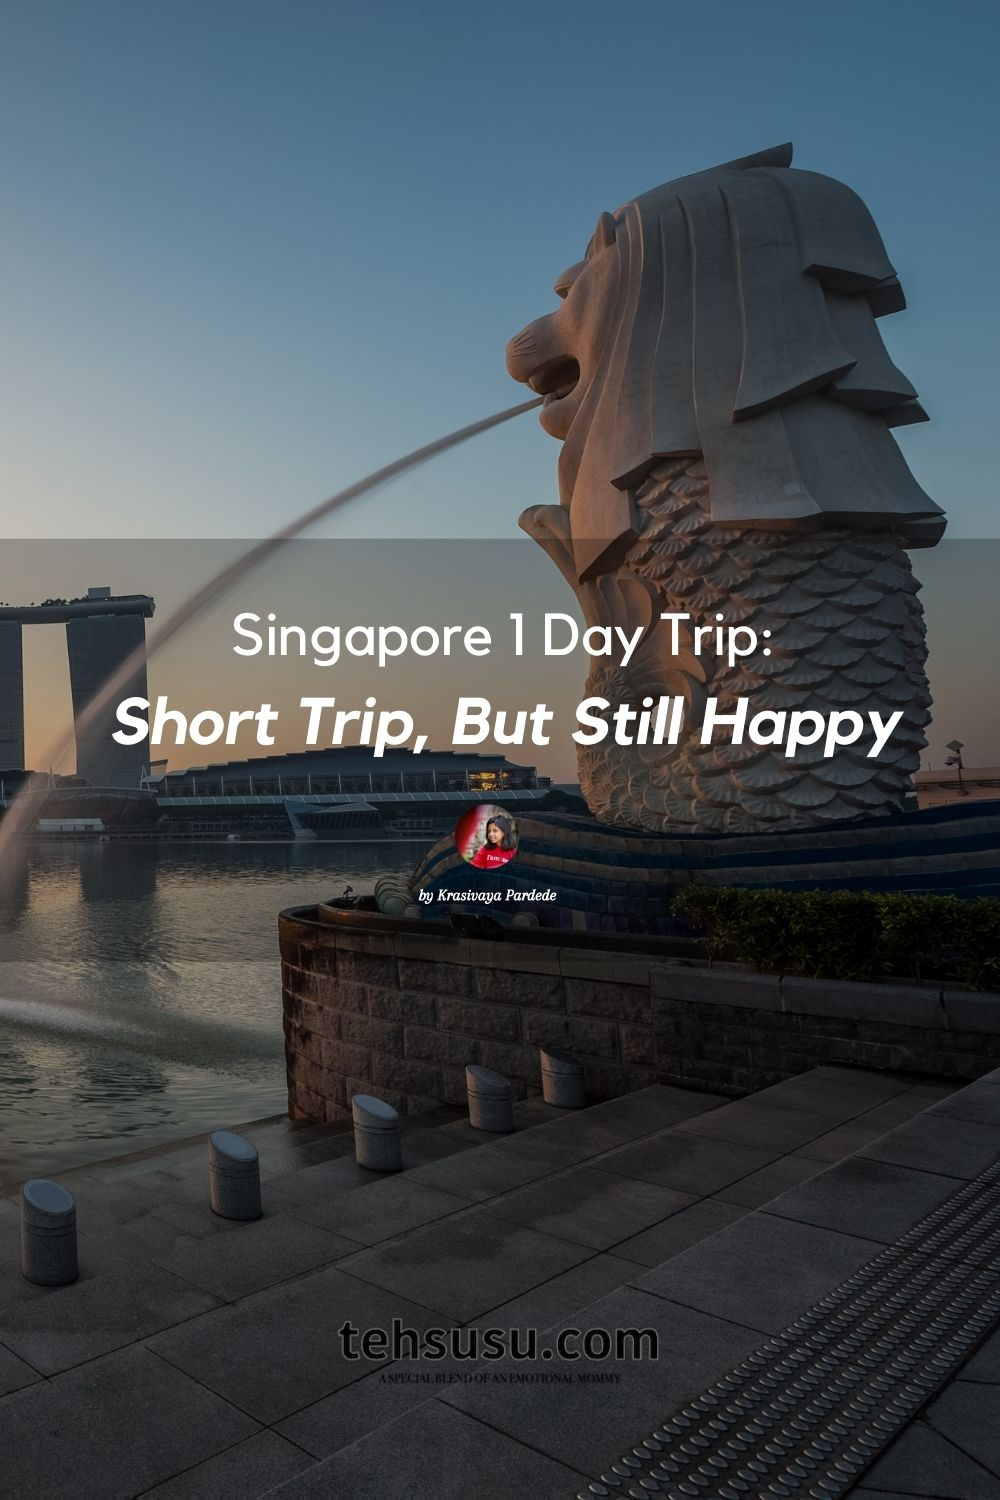 Singapore one day trip